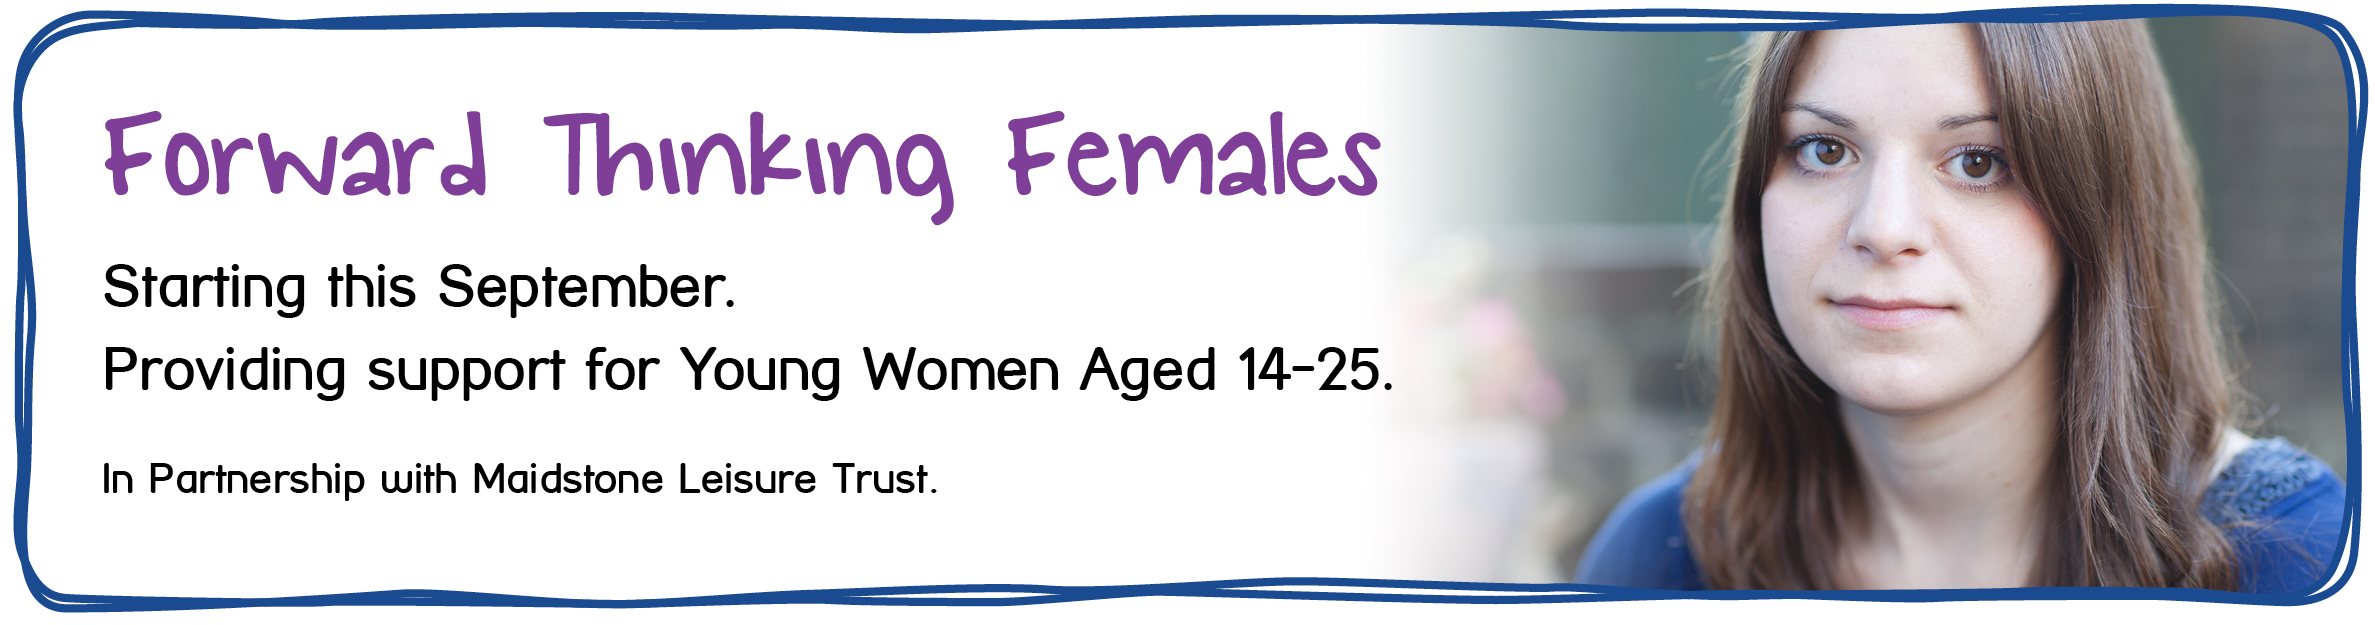 Forward Thinking Females - A Course Starting this September providing support for Young Women Aged 14-25.